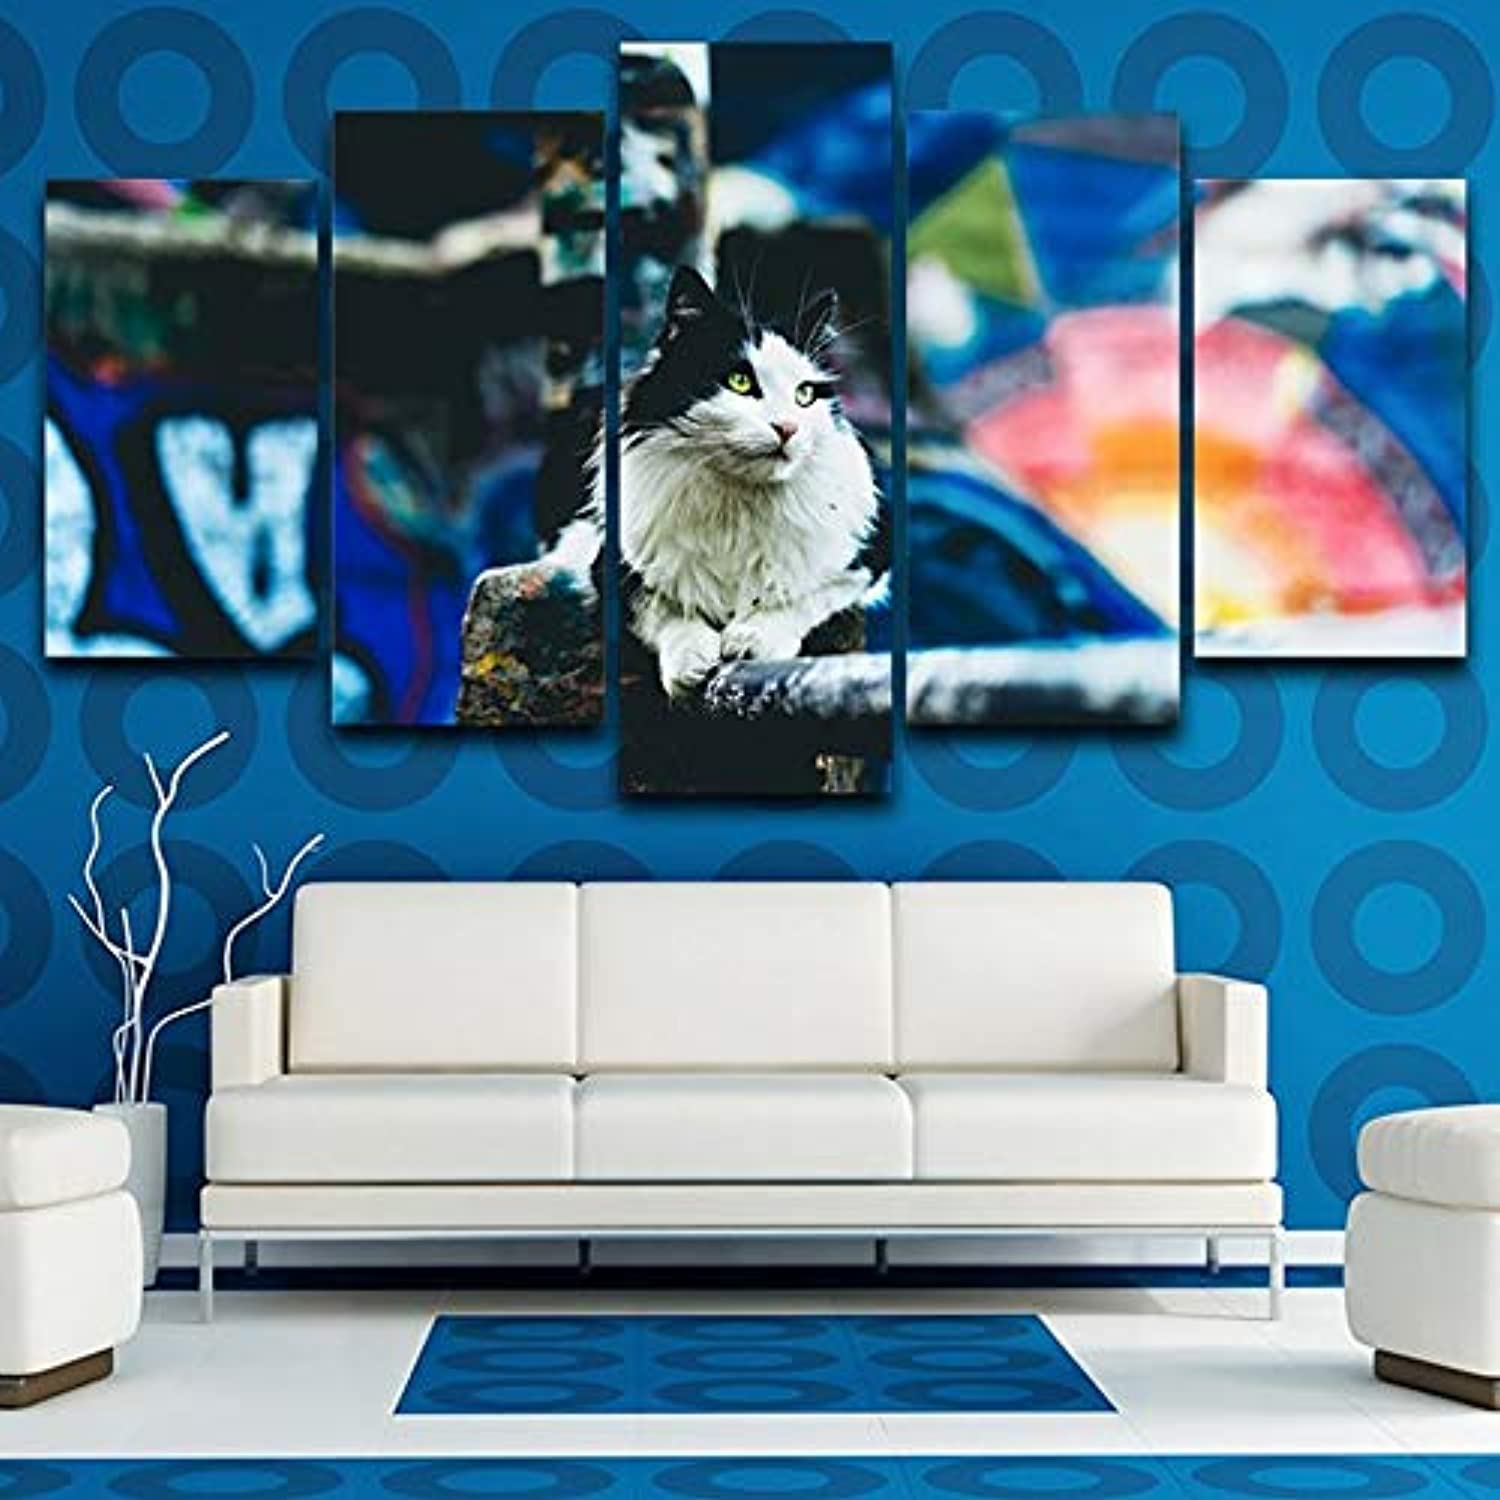 HD Printed Picture Framework Canvas Painting 5 Panel Black White Cat Animal Home Decor Poster for Living Room